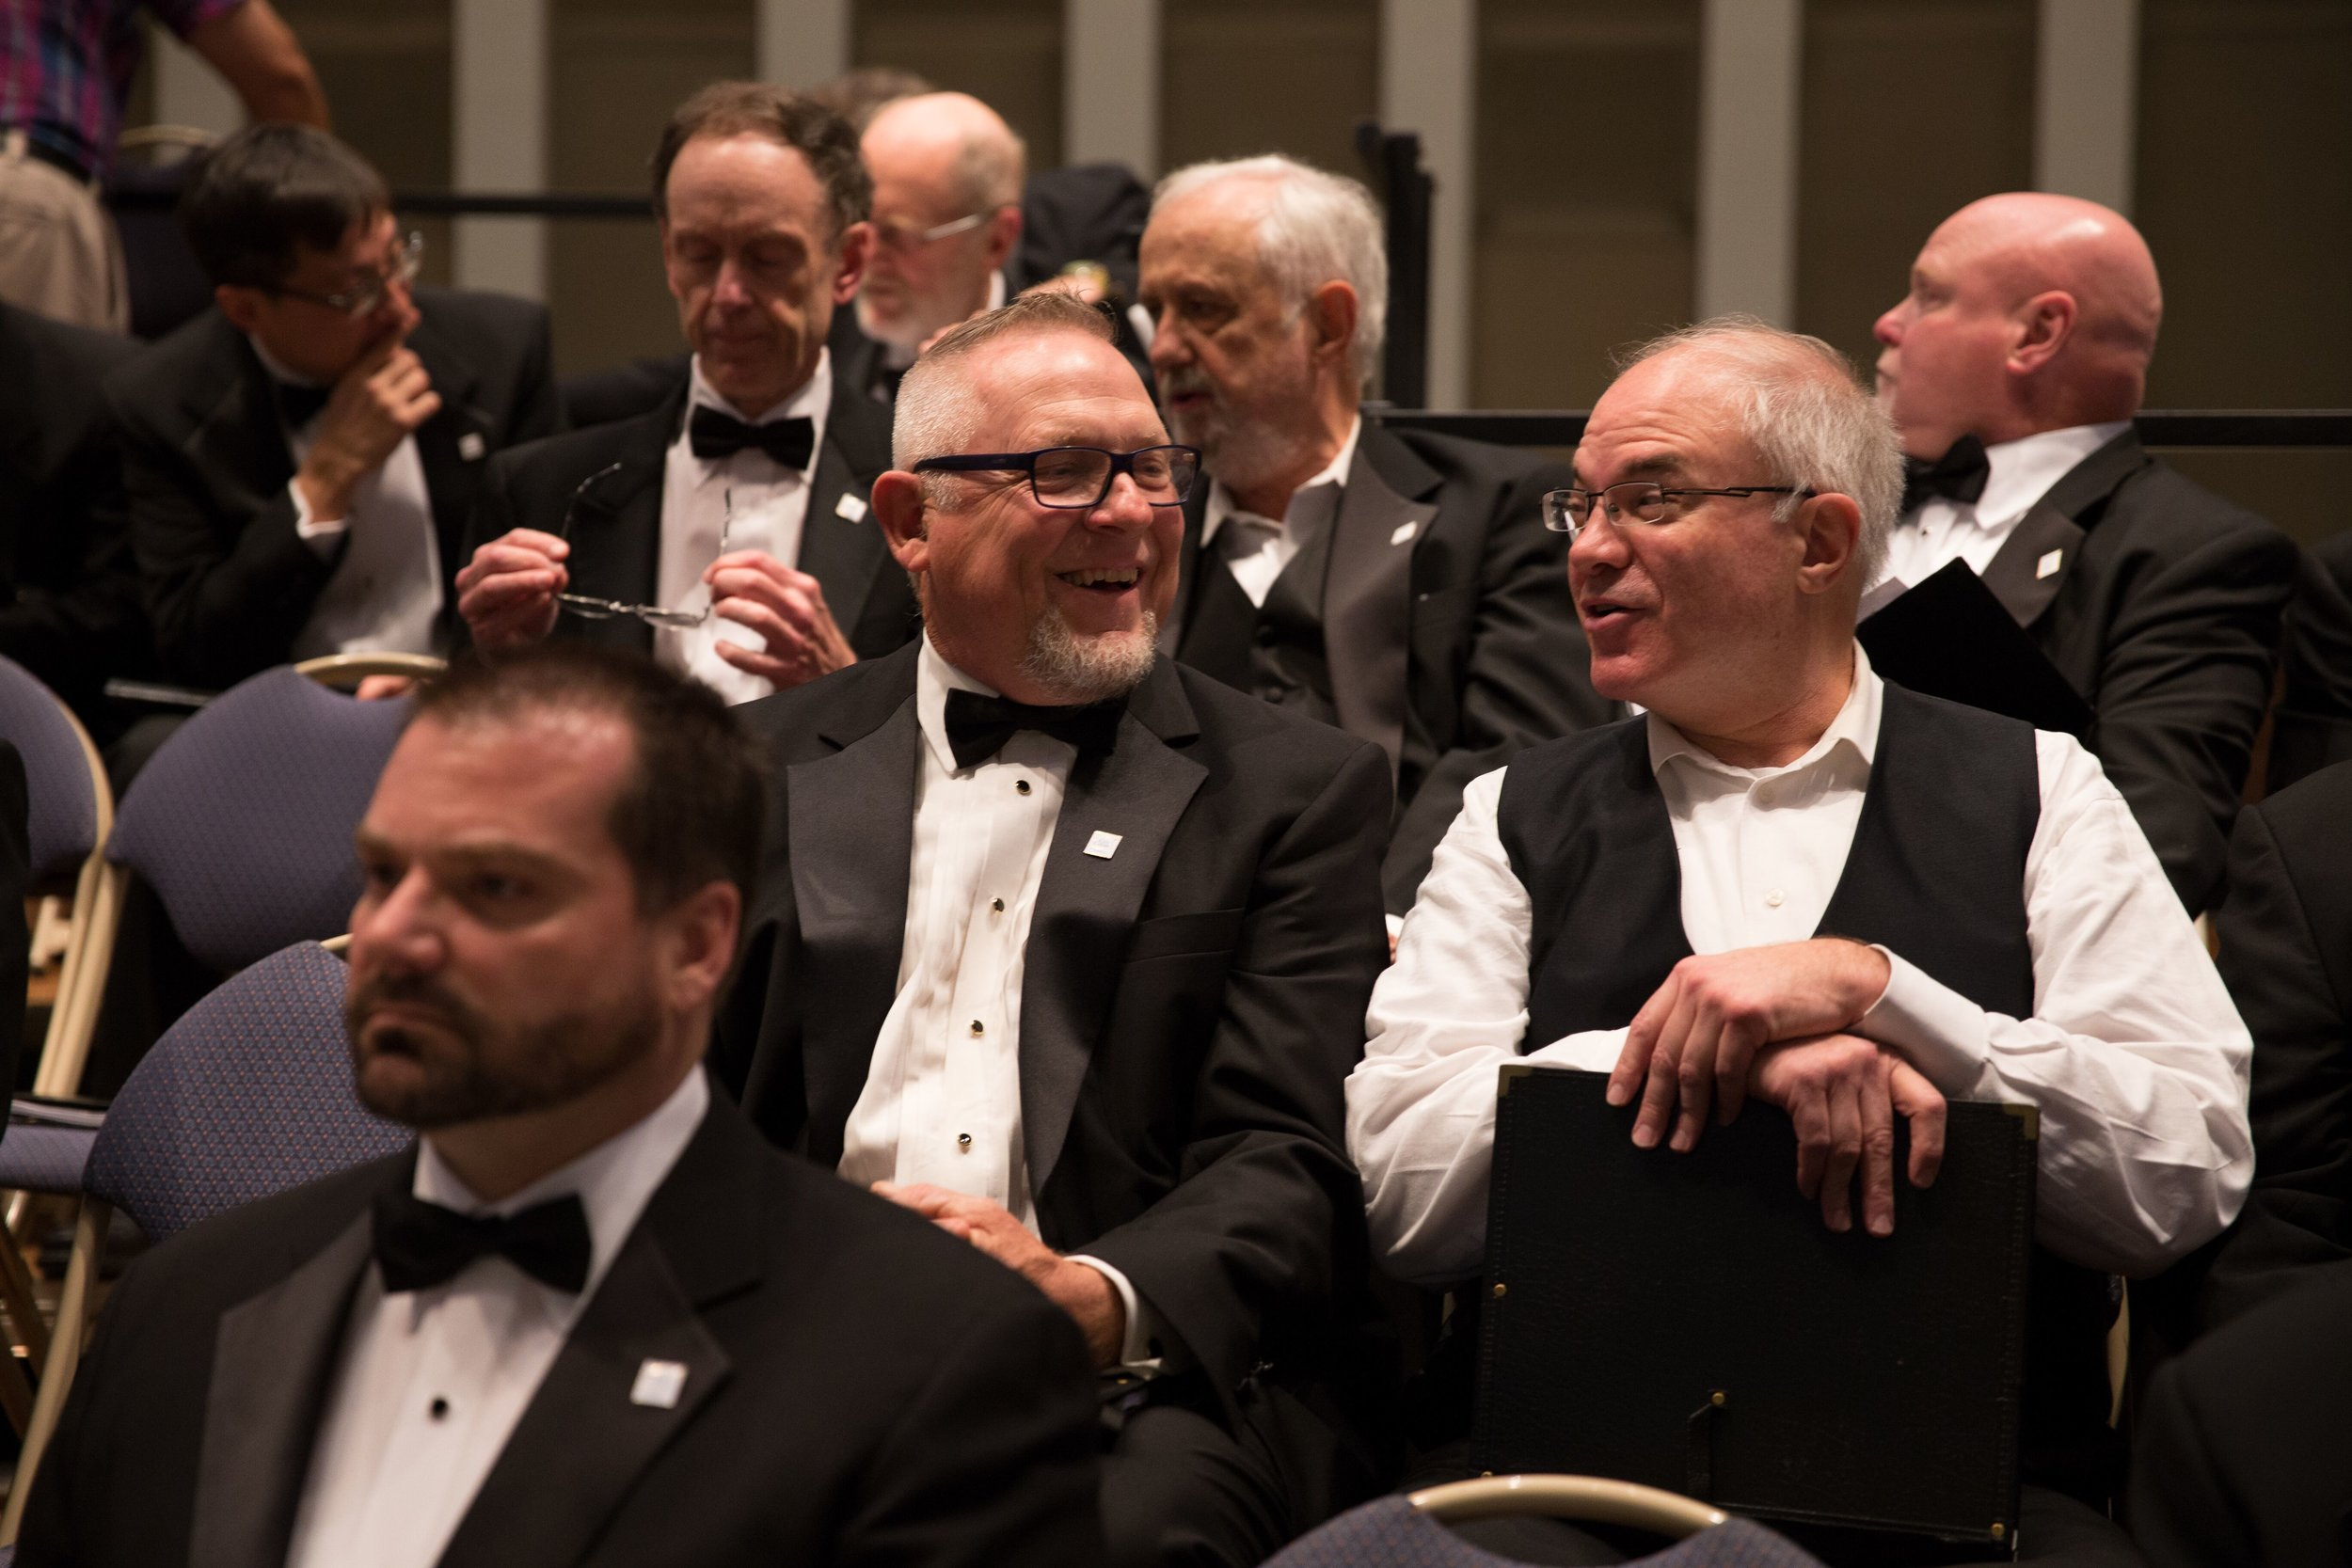 November 2017, tenors enjoy some downtime before the concert